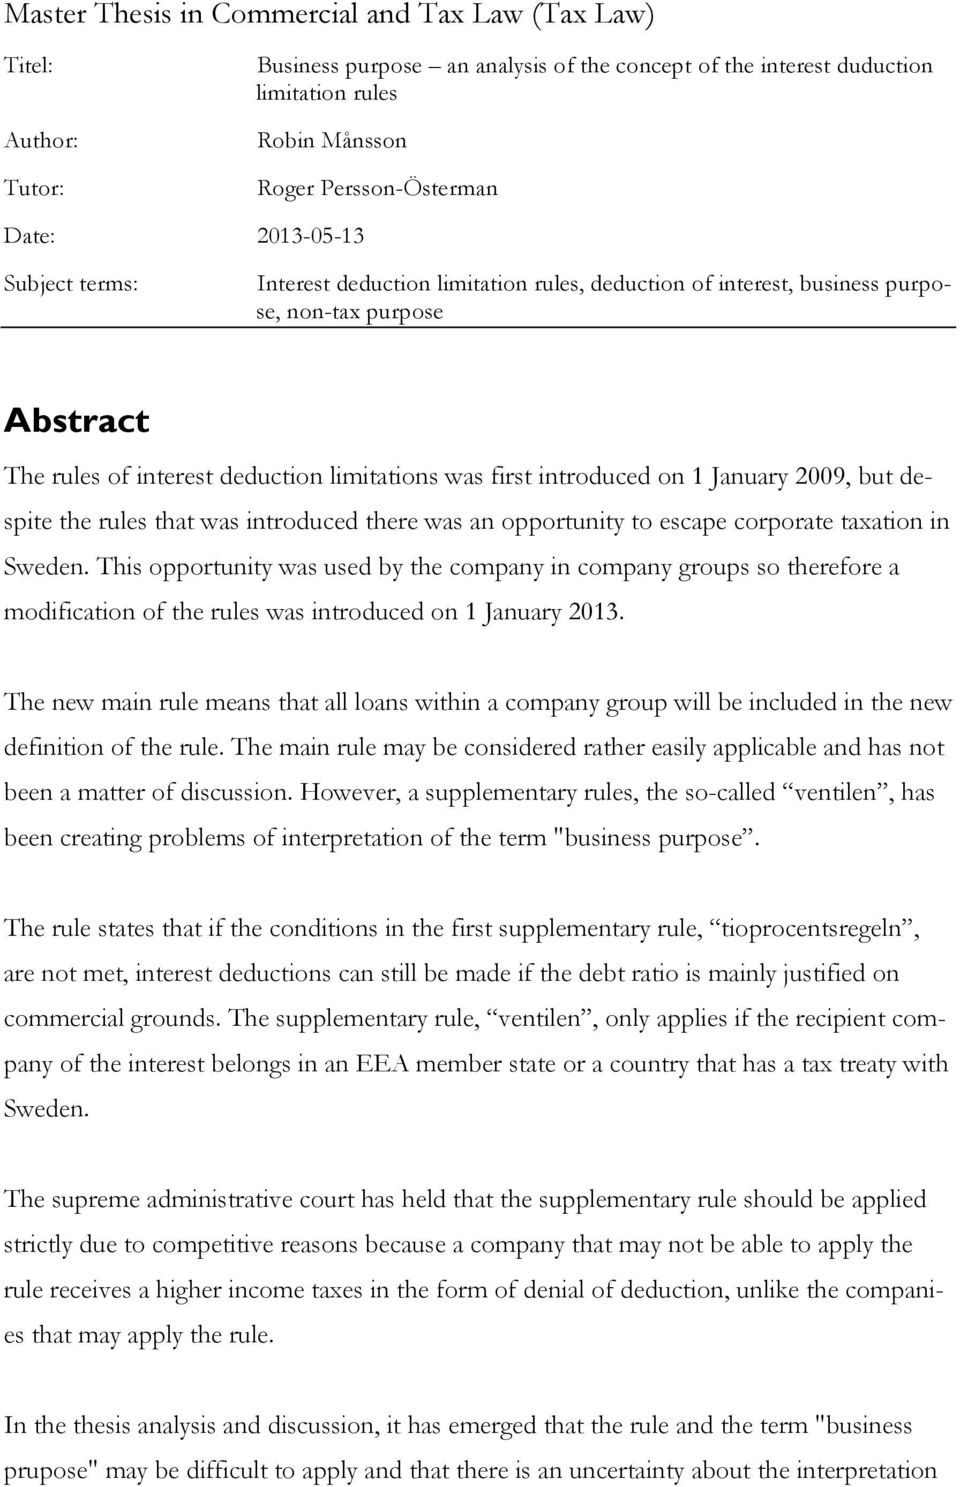 on 1 January 2009, but despite the rules that was introduced there was an opportunity to escape corporate taxation in Sweden.